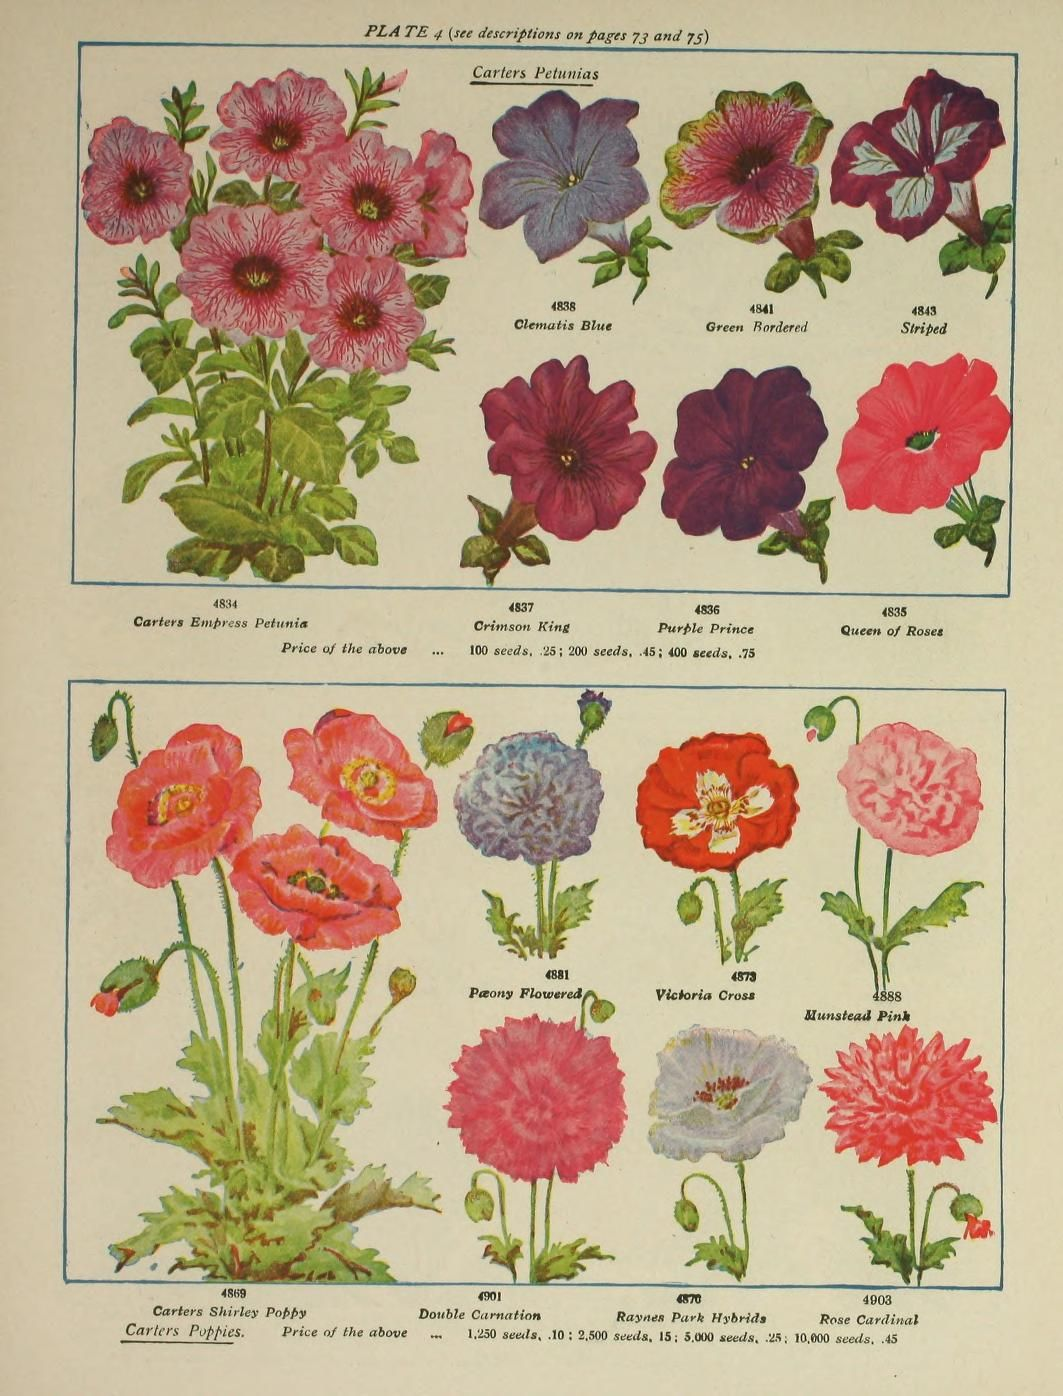 James Carter & Co. - Seed Catalogue - 1842